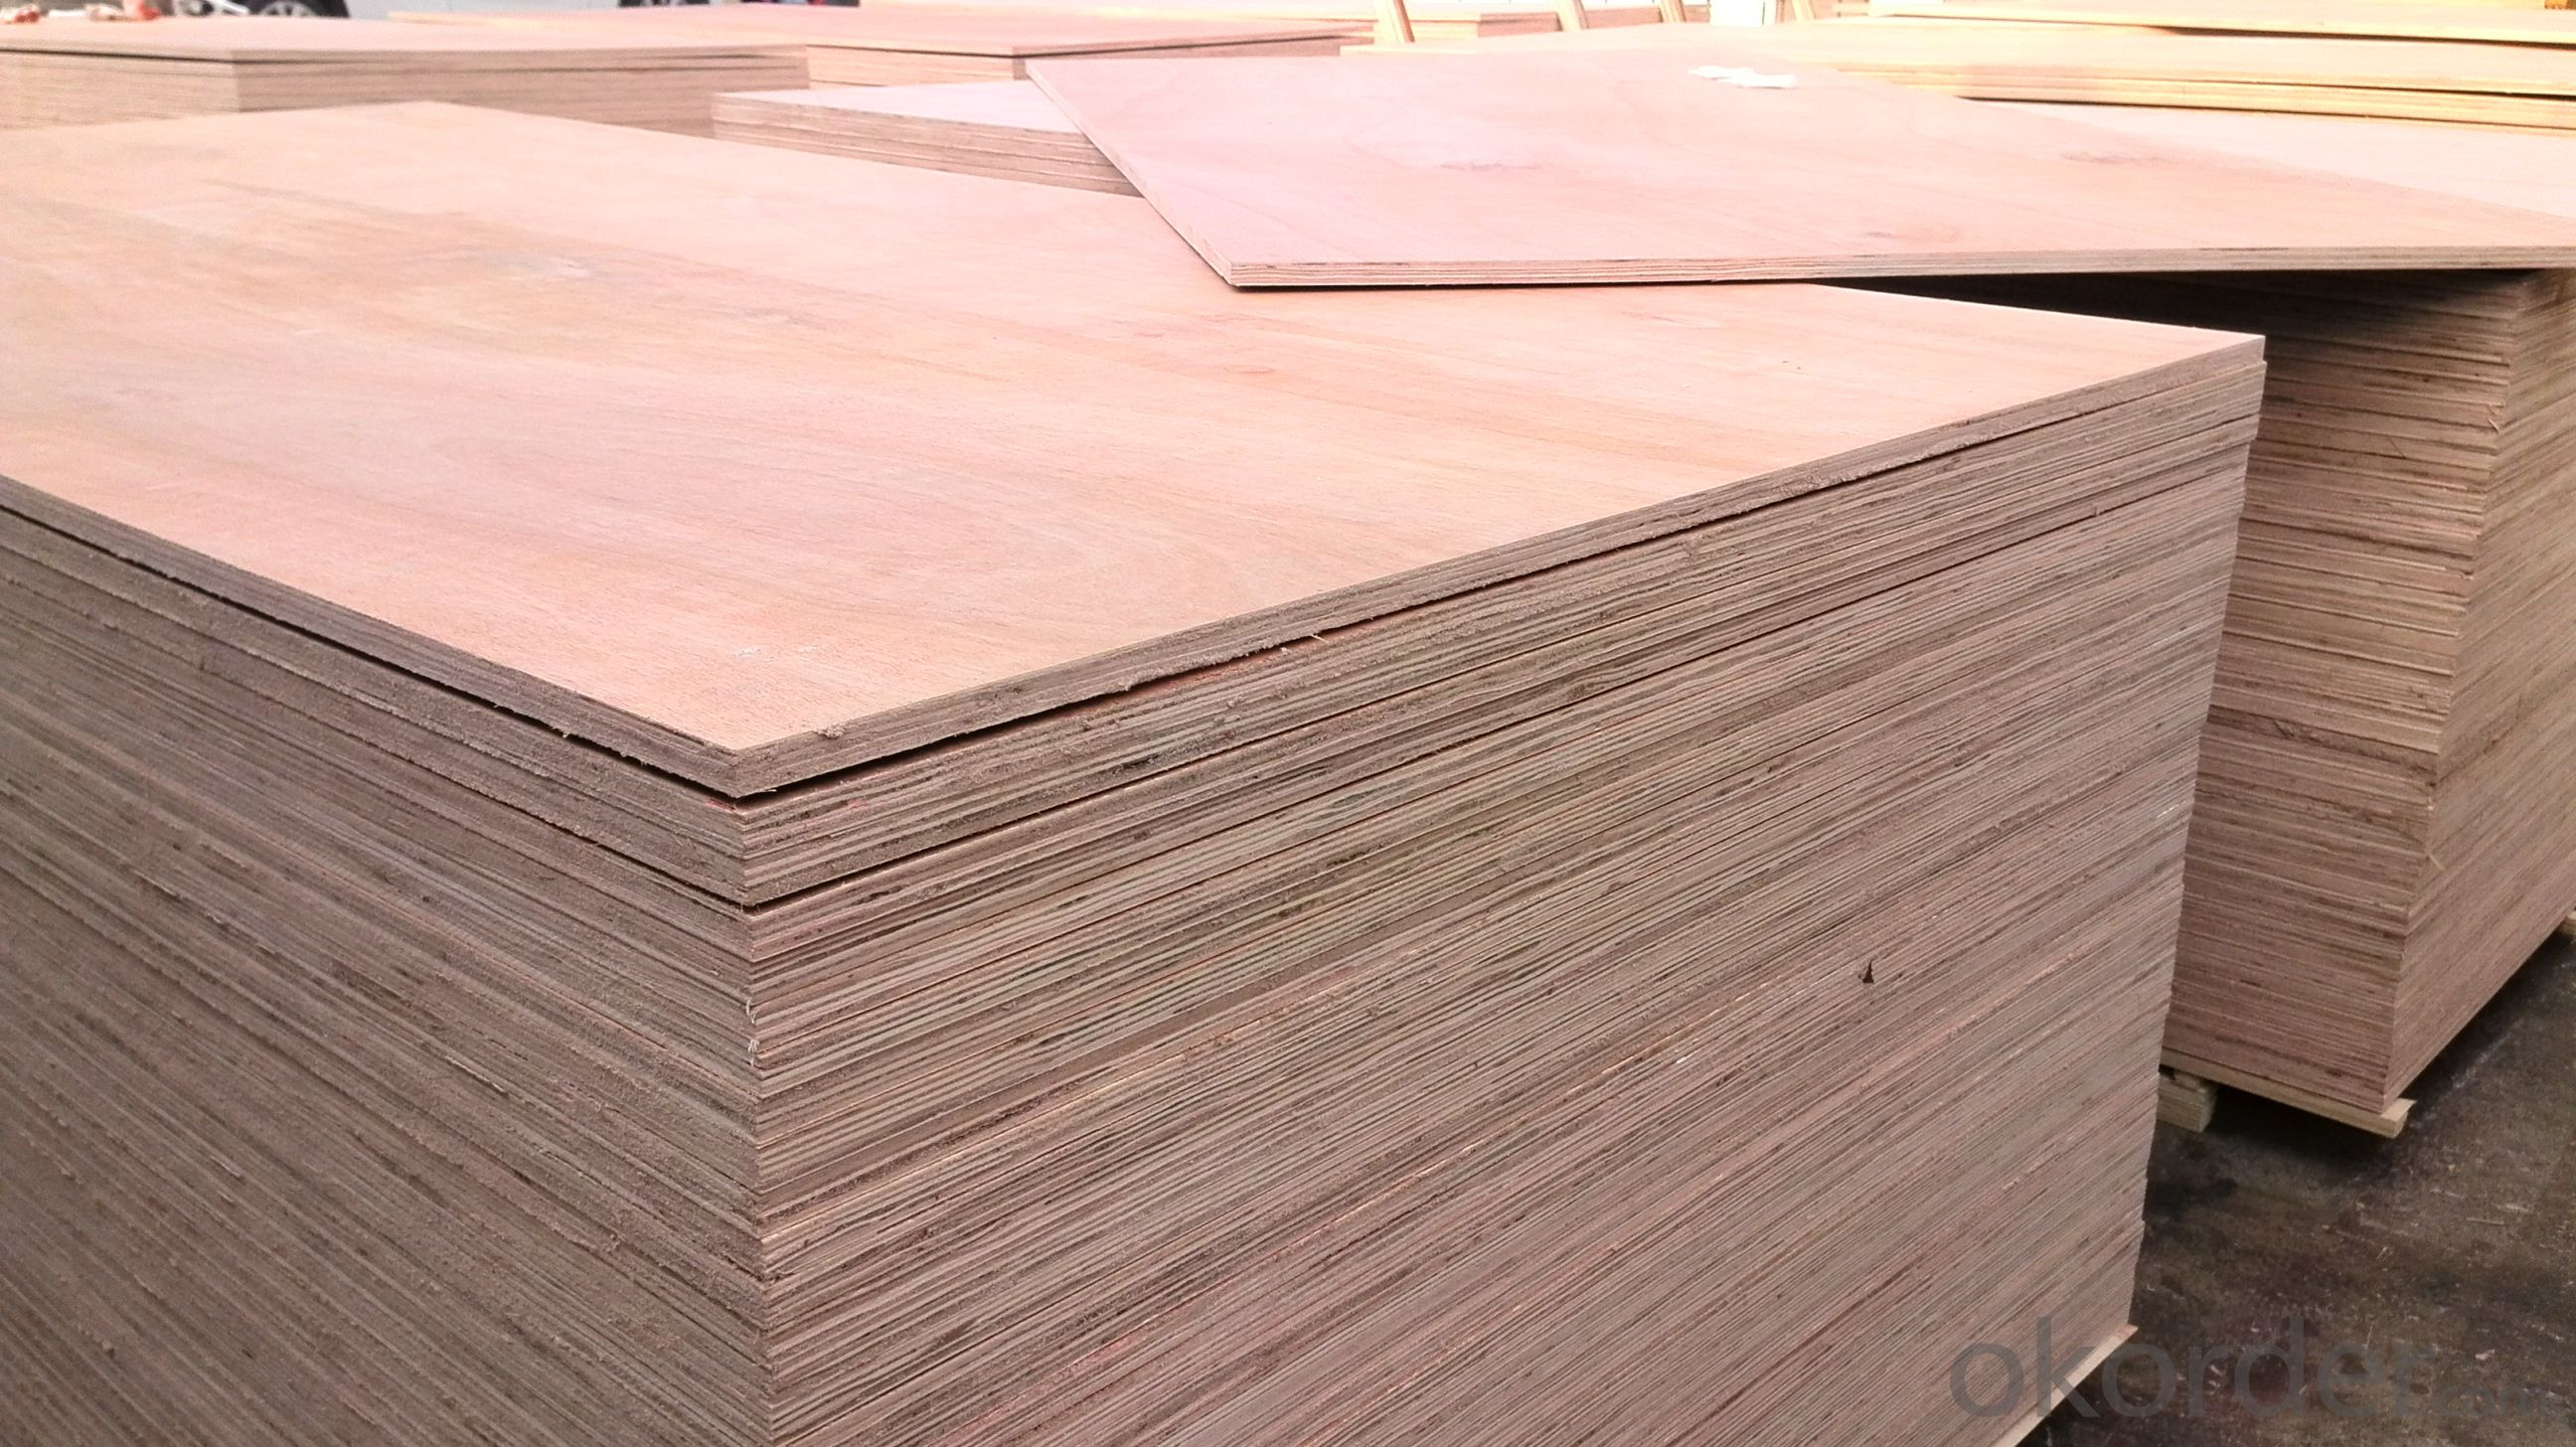 Weight Of Lumber Plywood ~ Buy pla pa wood veneer face plywood thin board price size